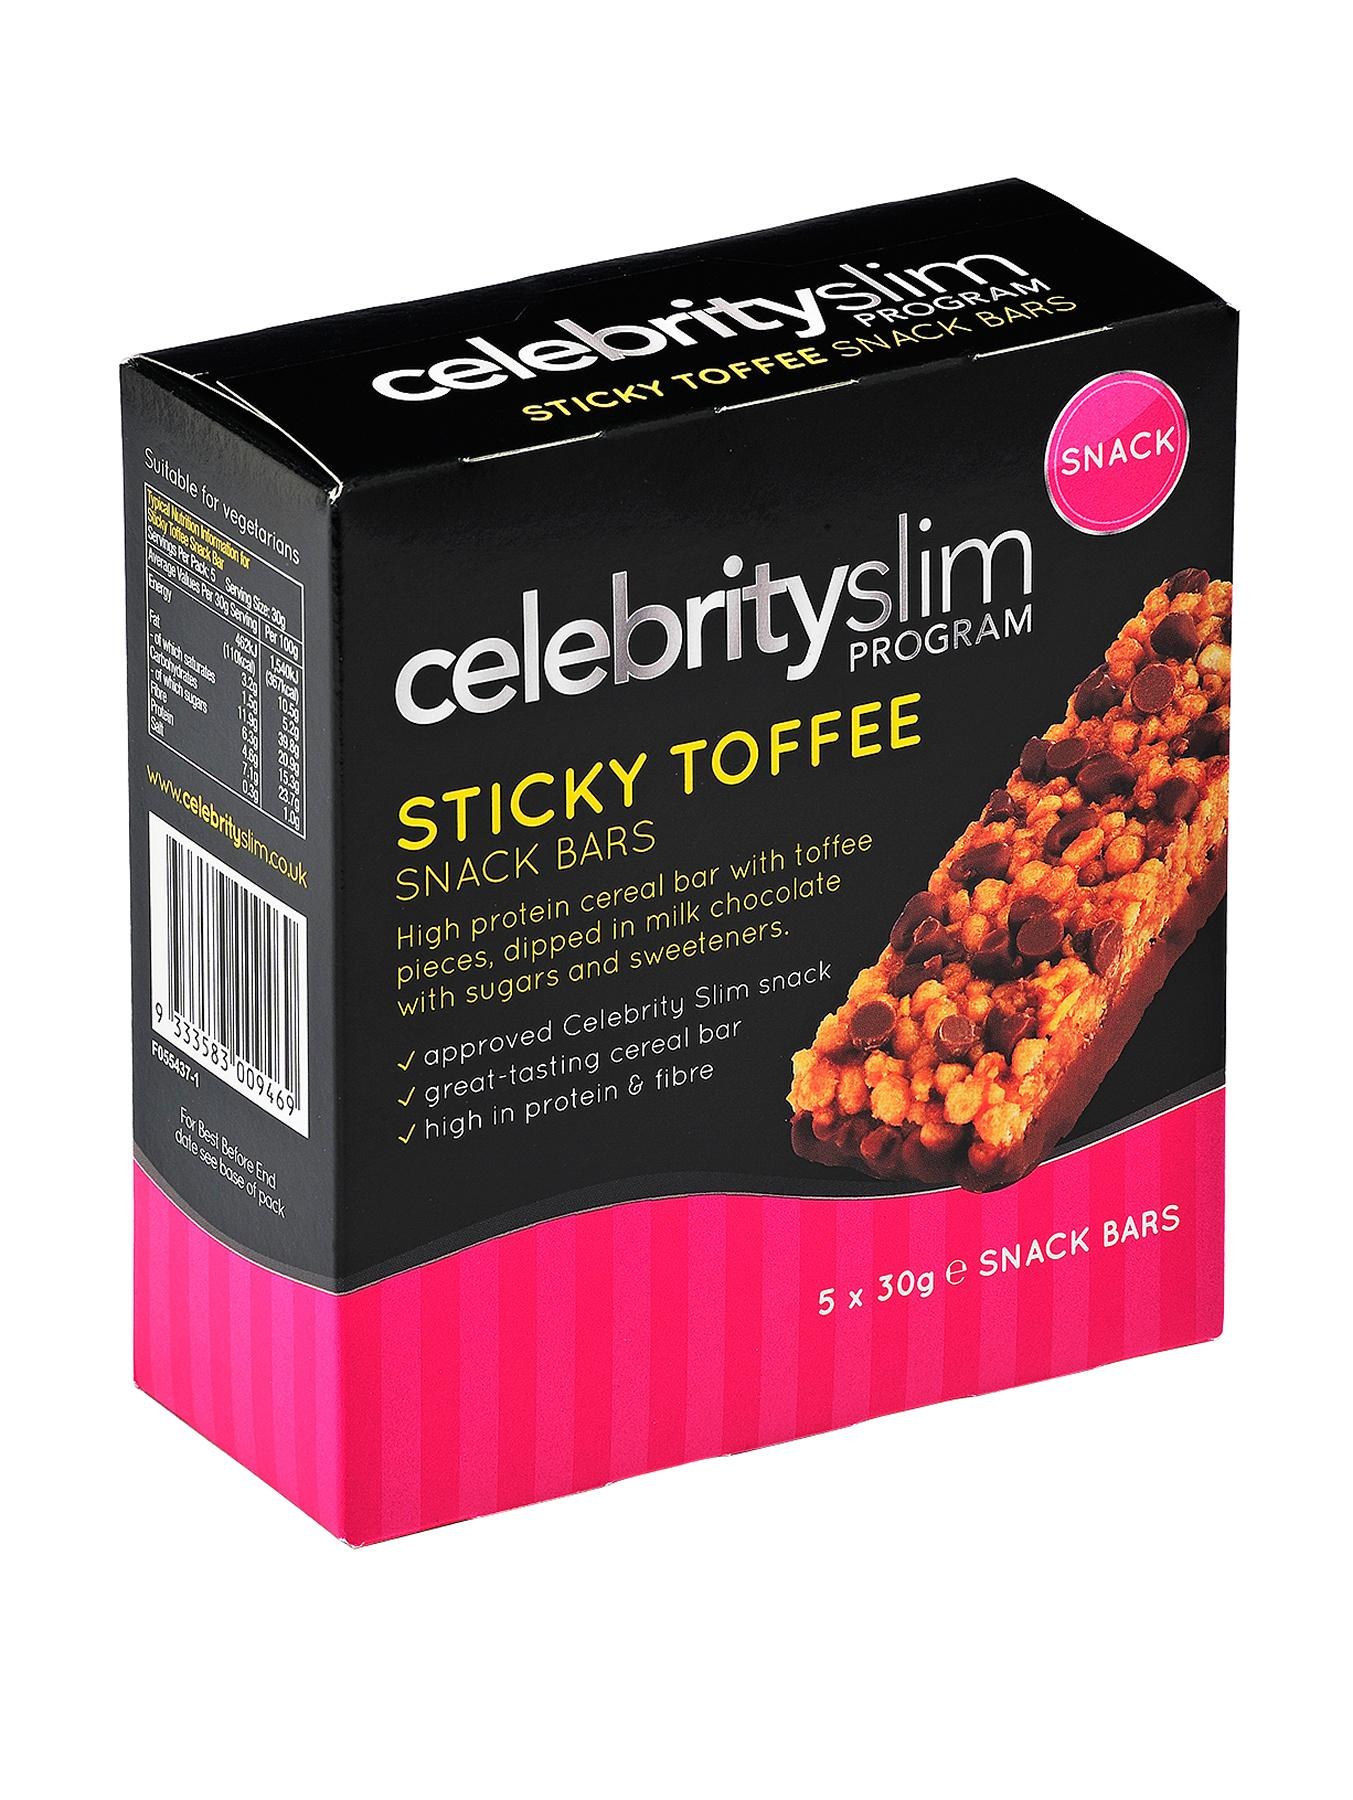 Celebrity Slim Sticky Toffee Snack Bar (5 pack)